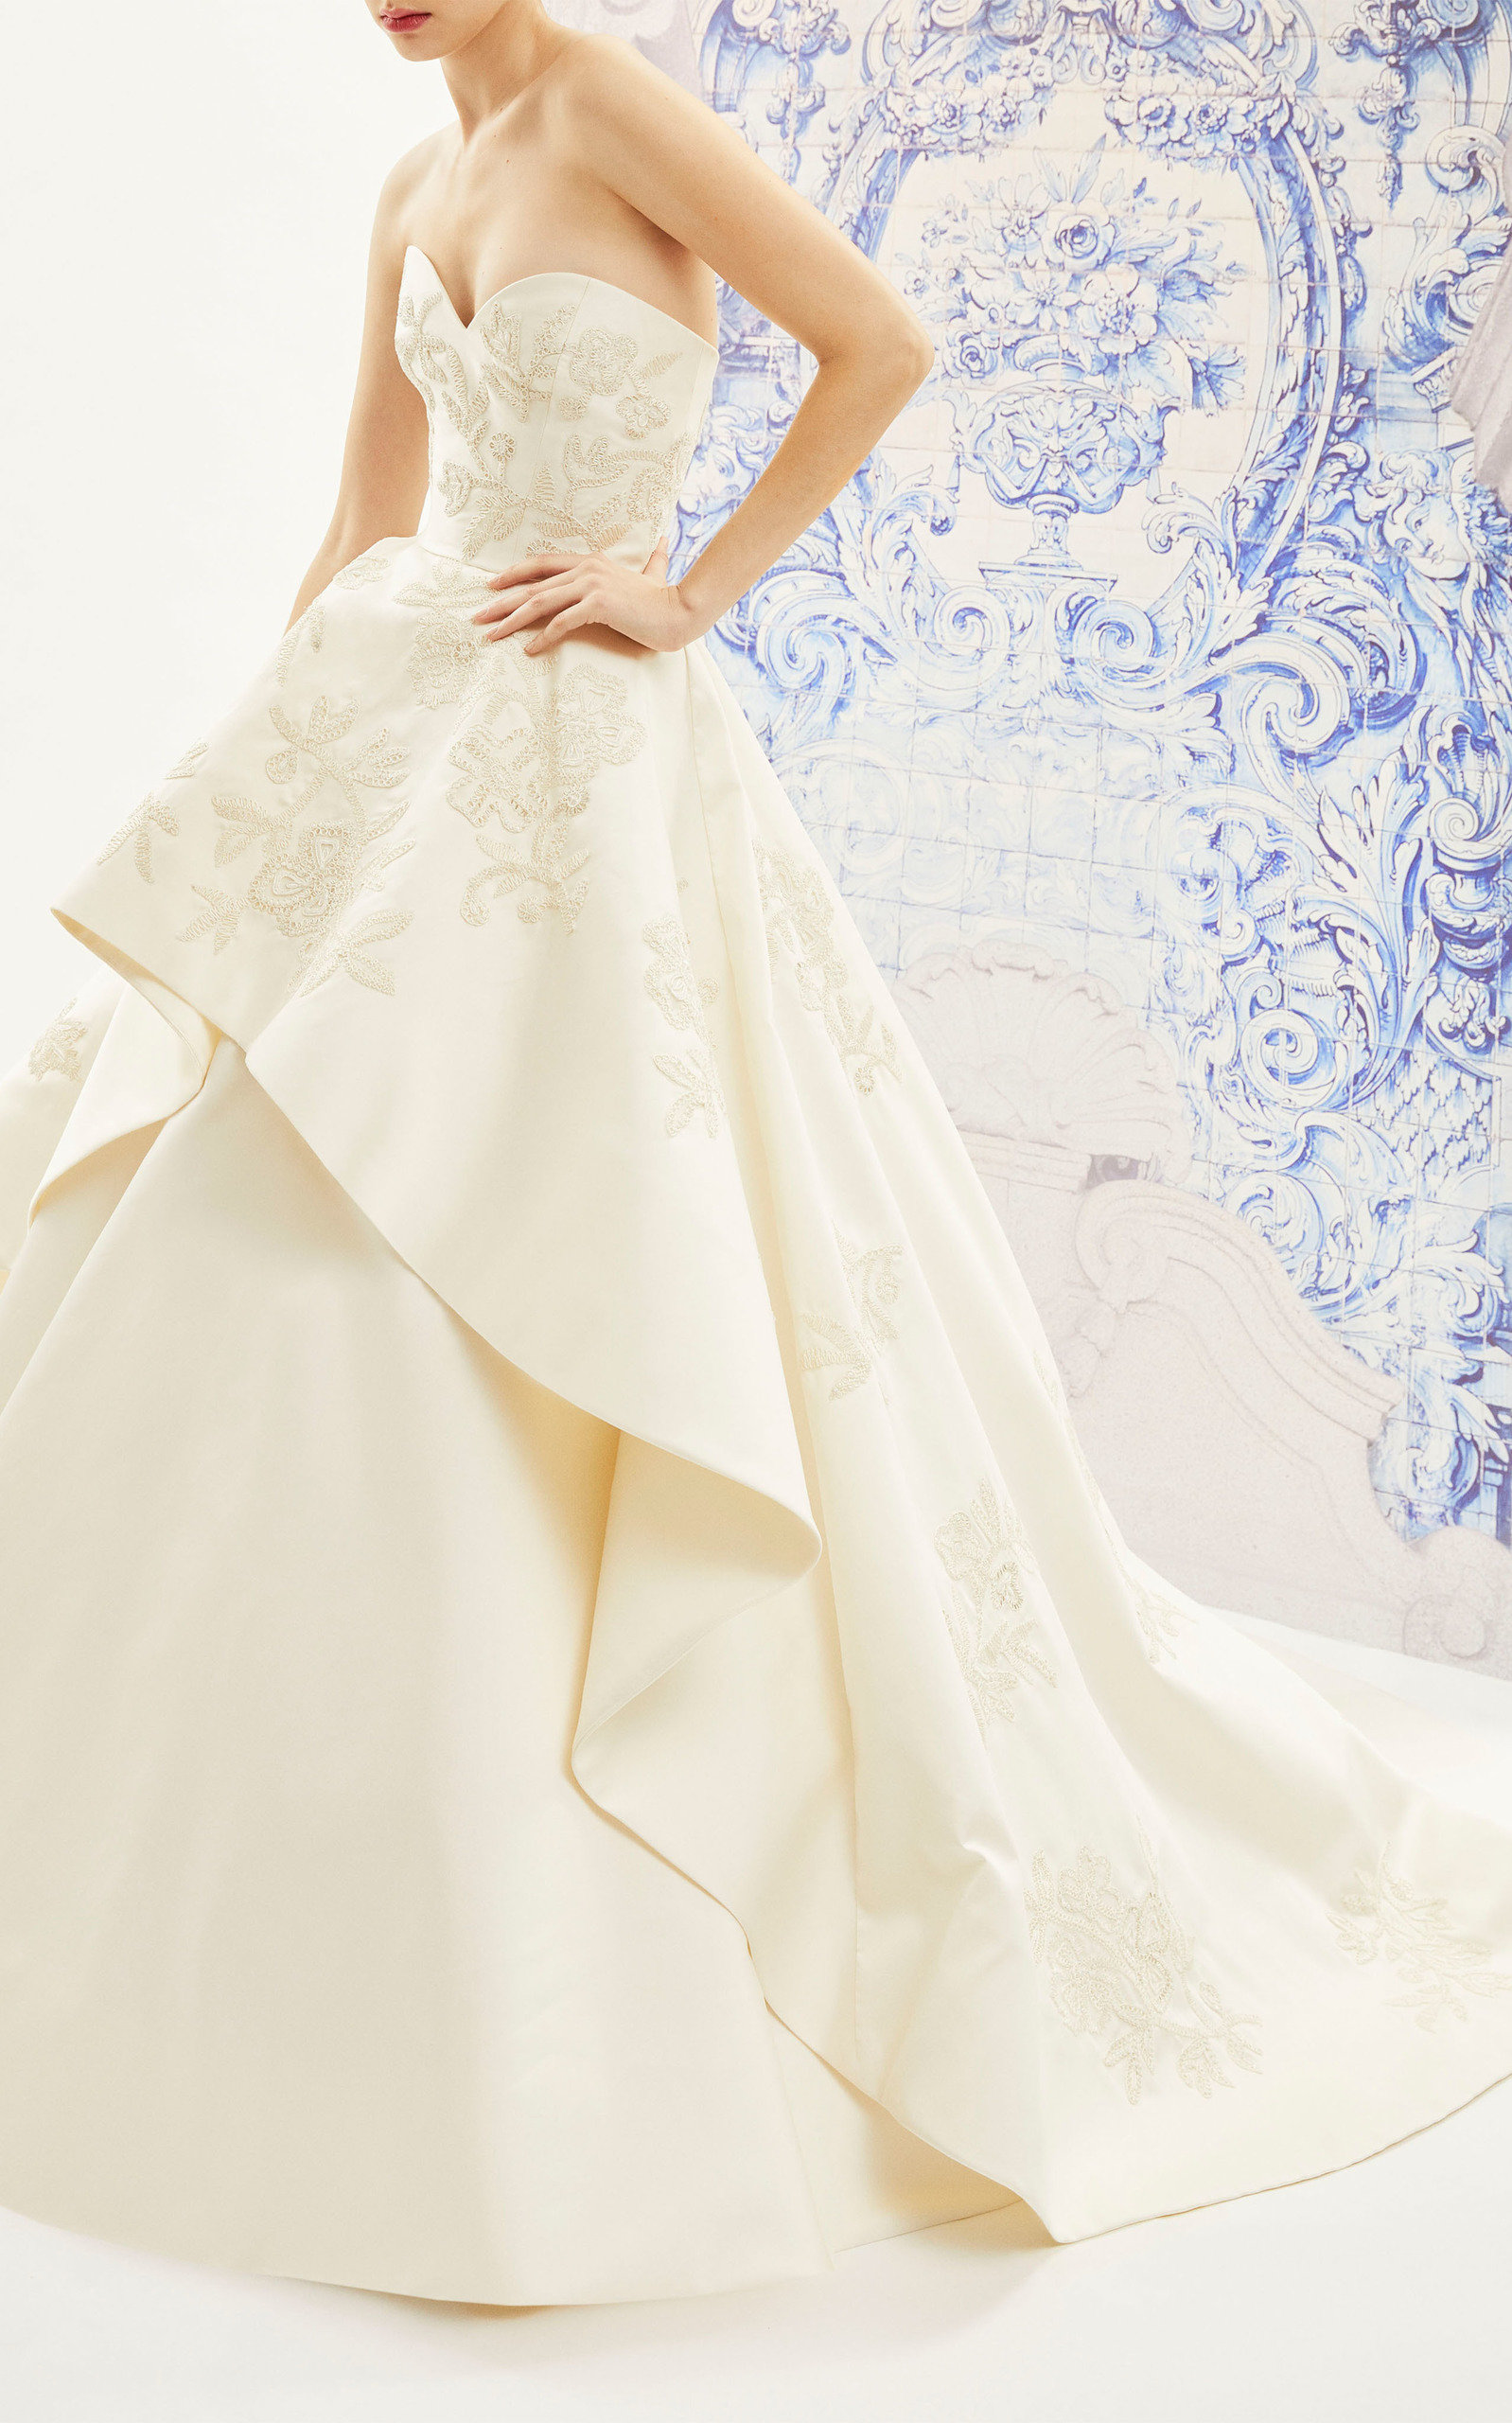 CAROLINA HERRERA BRIDAL Ivonne Strapless Silk Ballgown With Floral Embroidered Tiered Skirt in Ivory